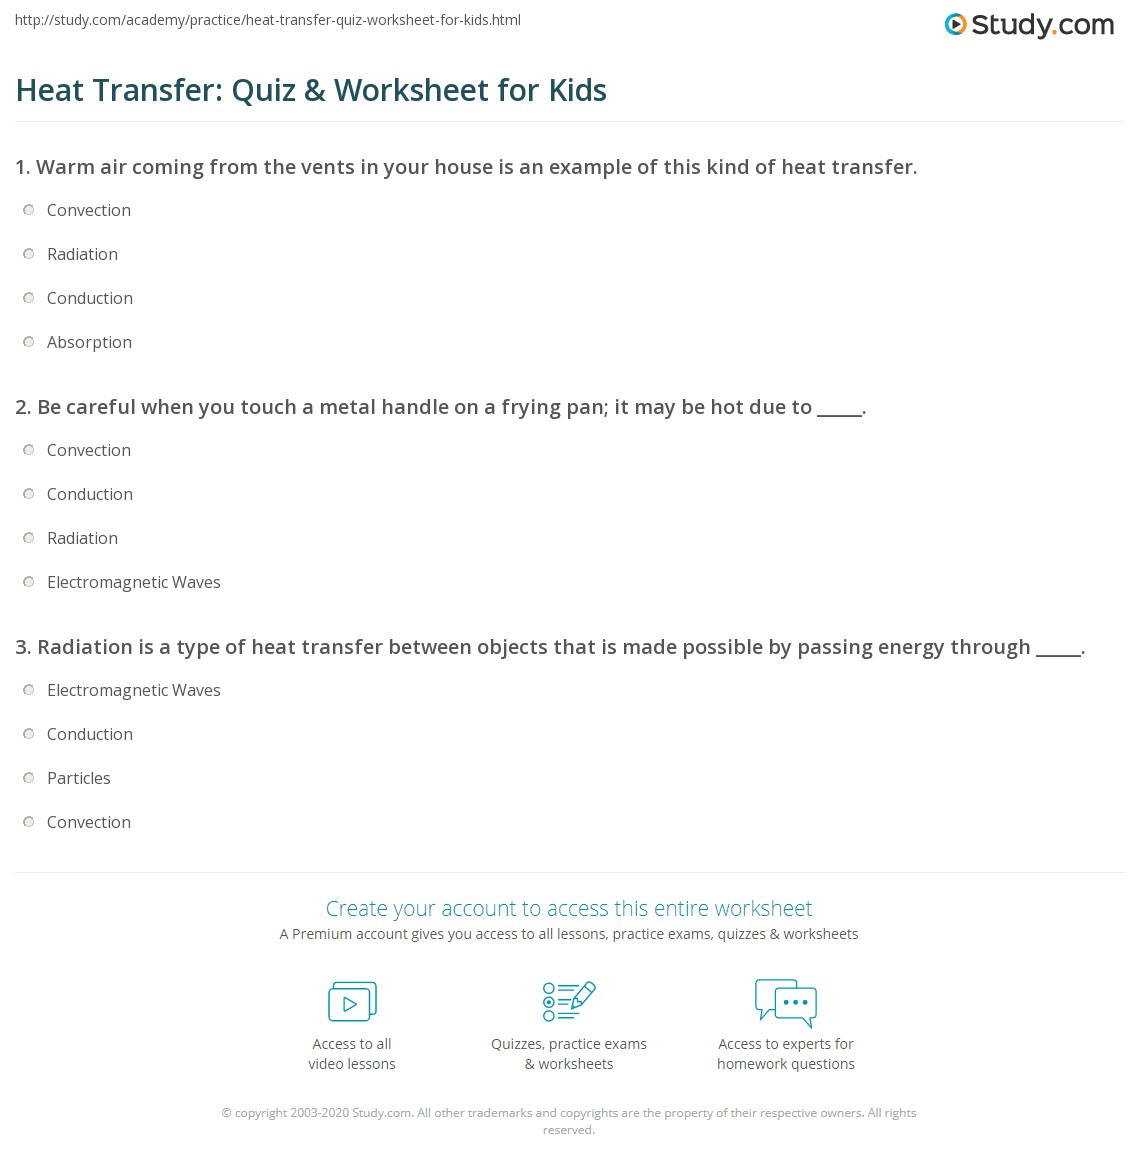 Heat Transfer Worksheet Middle School Heat Transfer Quiz & Worksheet for Kids